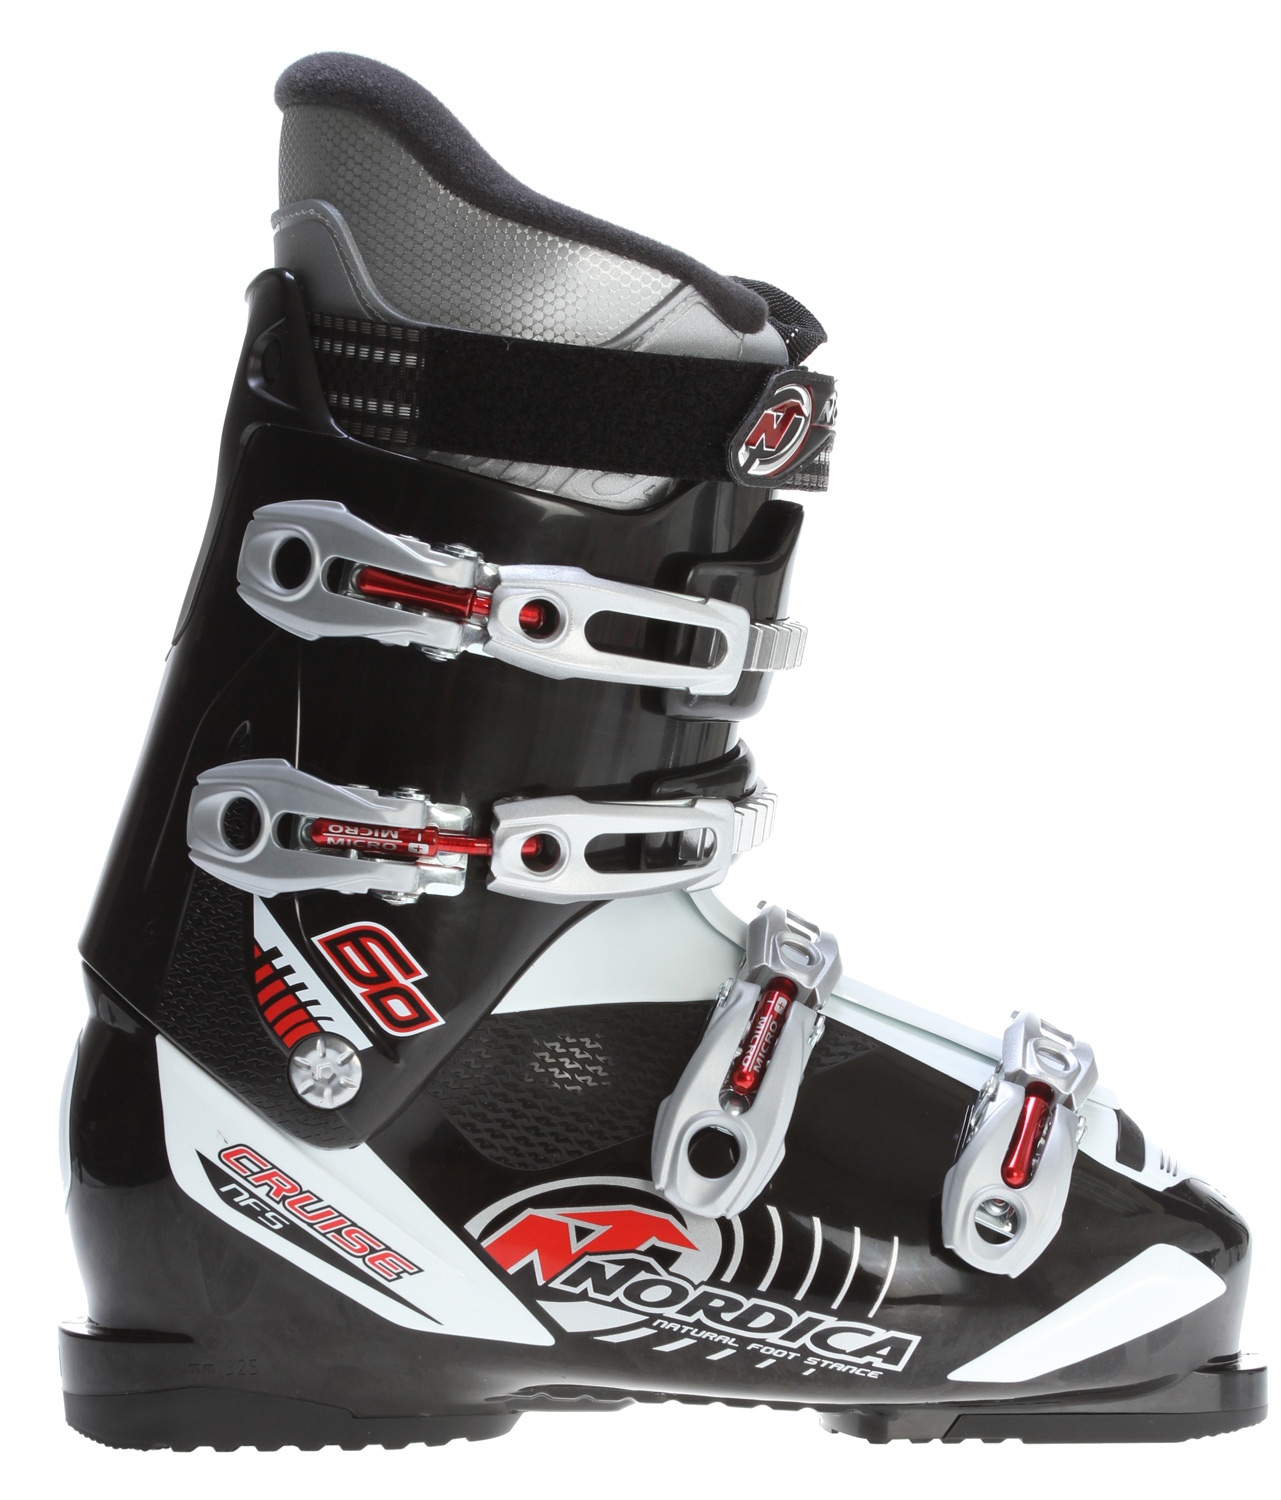 Ski Key Features of the Nordica Cruise 60 Ski Boots: NFS Natural foot stance ACP Adjustable cuff profile 3D Comfort fit liner ALU Buckles mix Size range 24.0-31.0 MP Last: 104 - $158.95